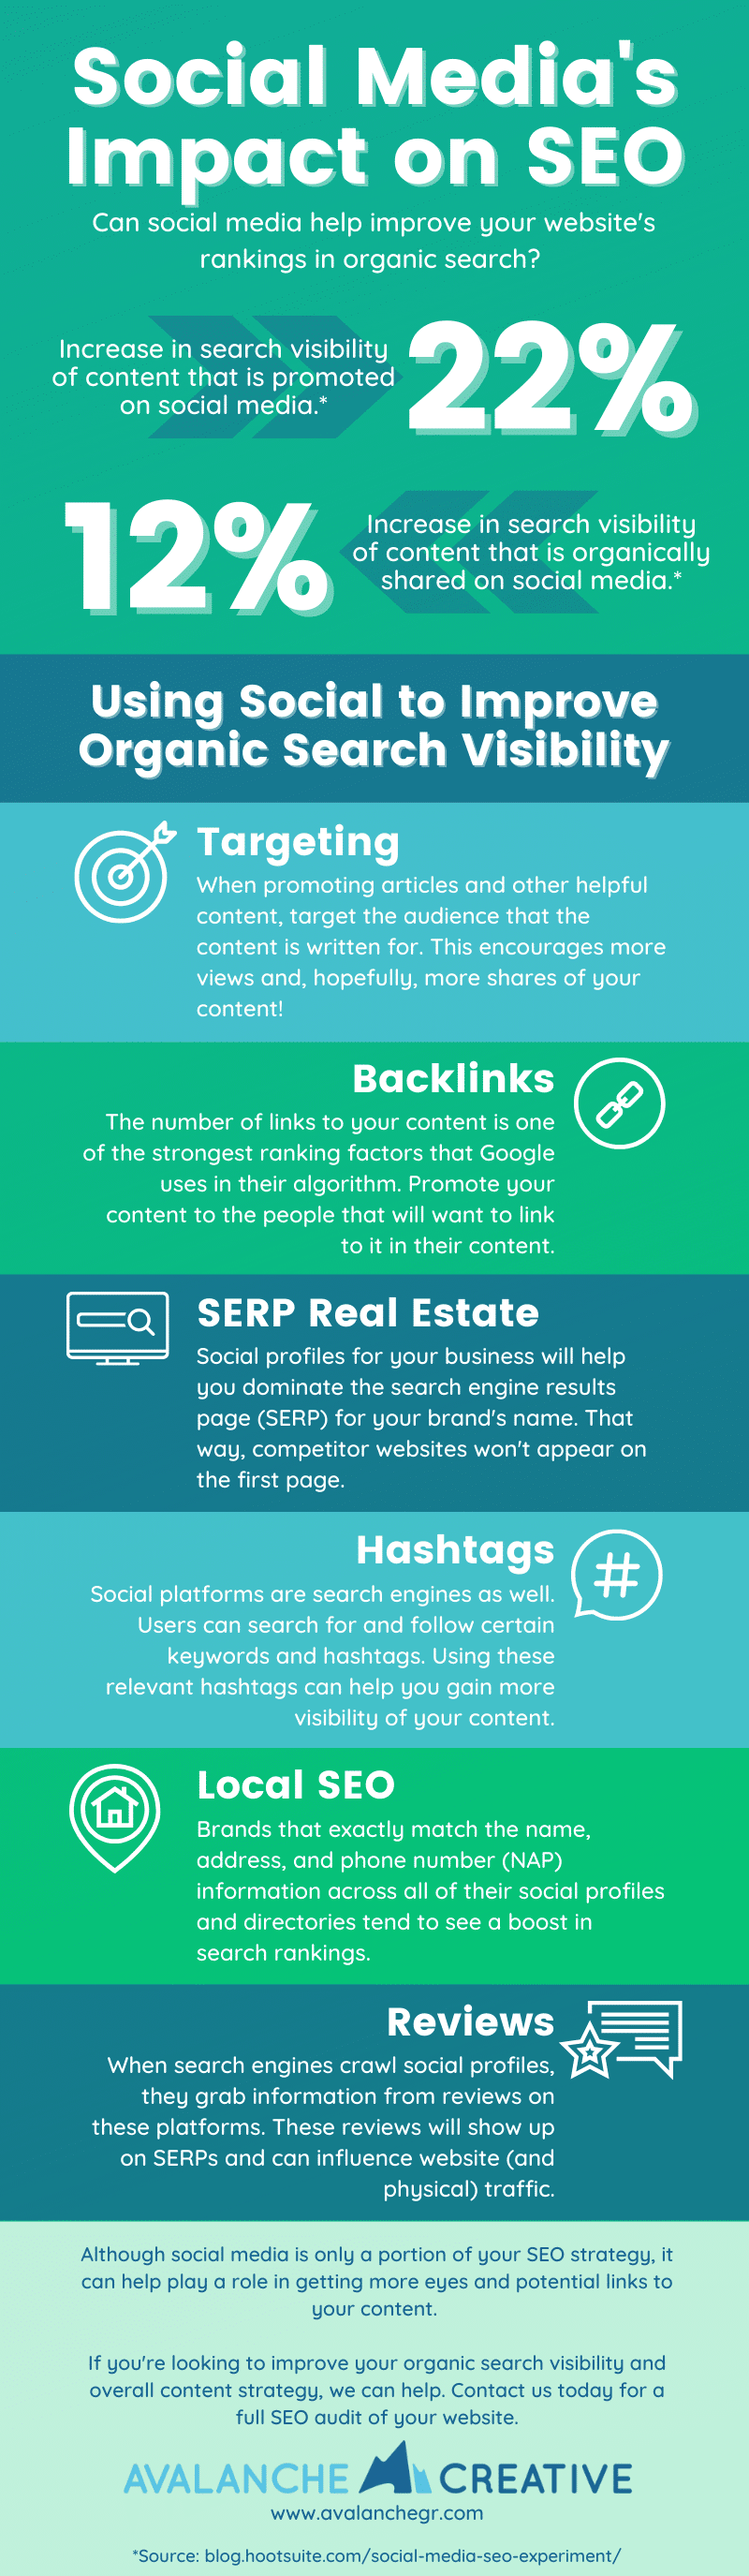 Infographic about Social Media's Impact on SEO